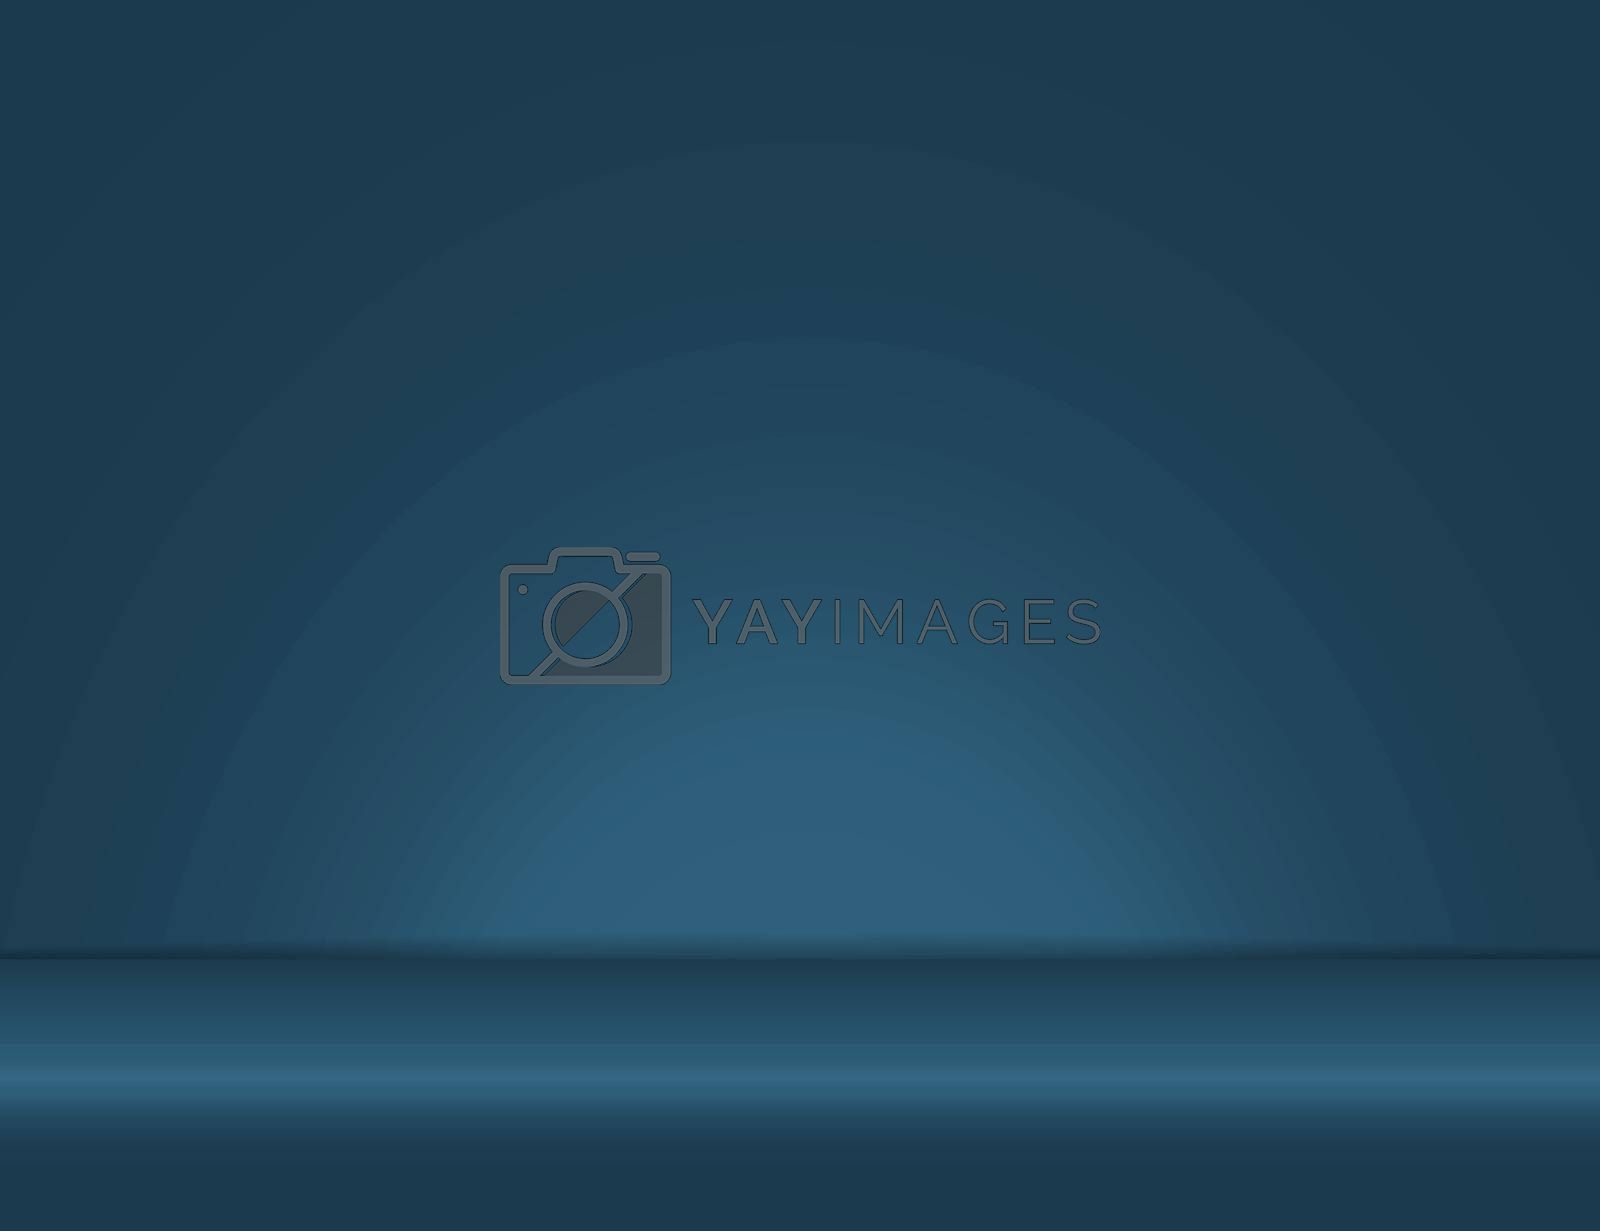 blue light rays room studio background for use in various applications and design products vector